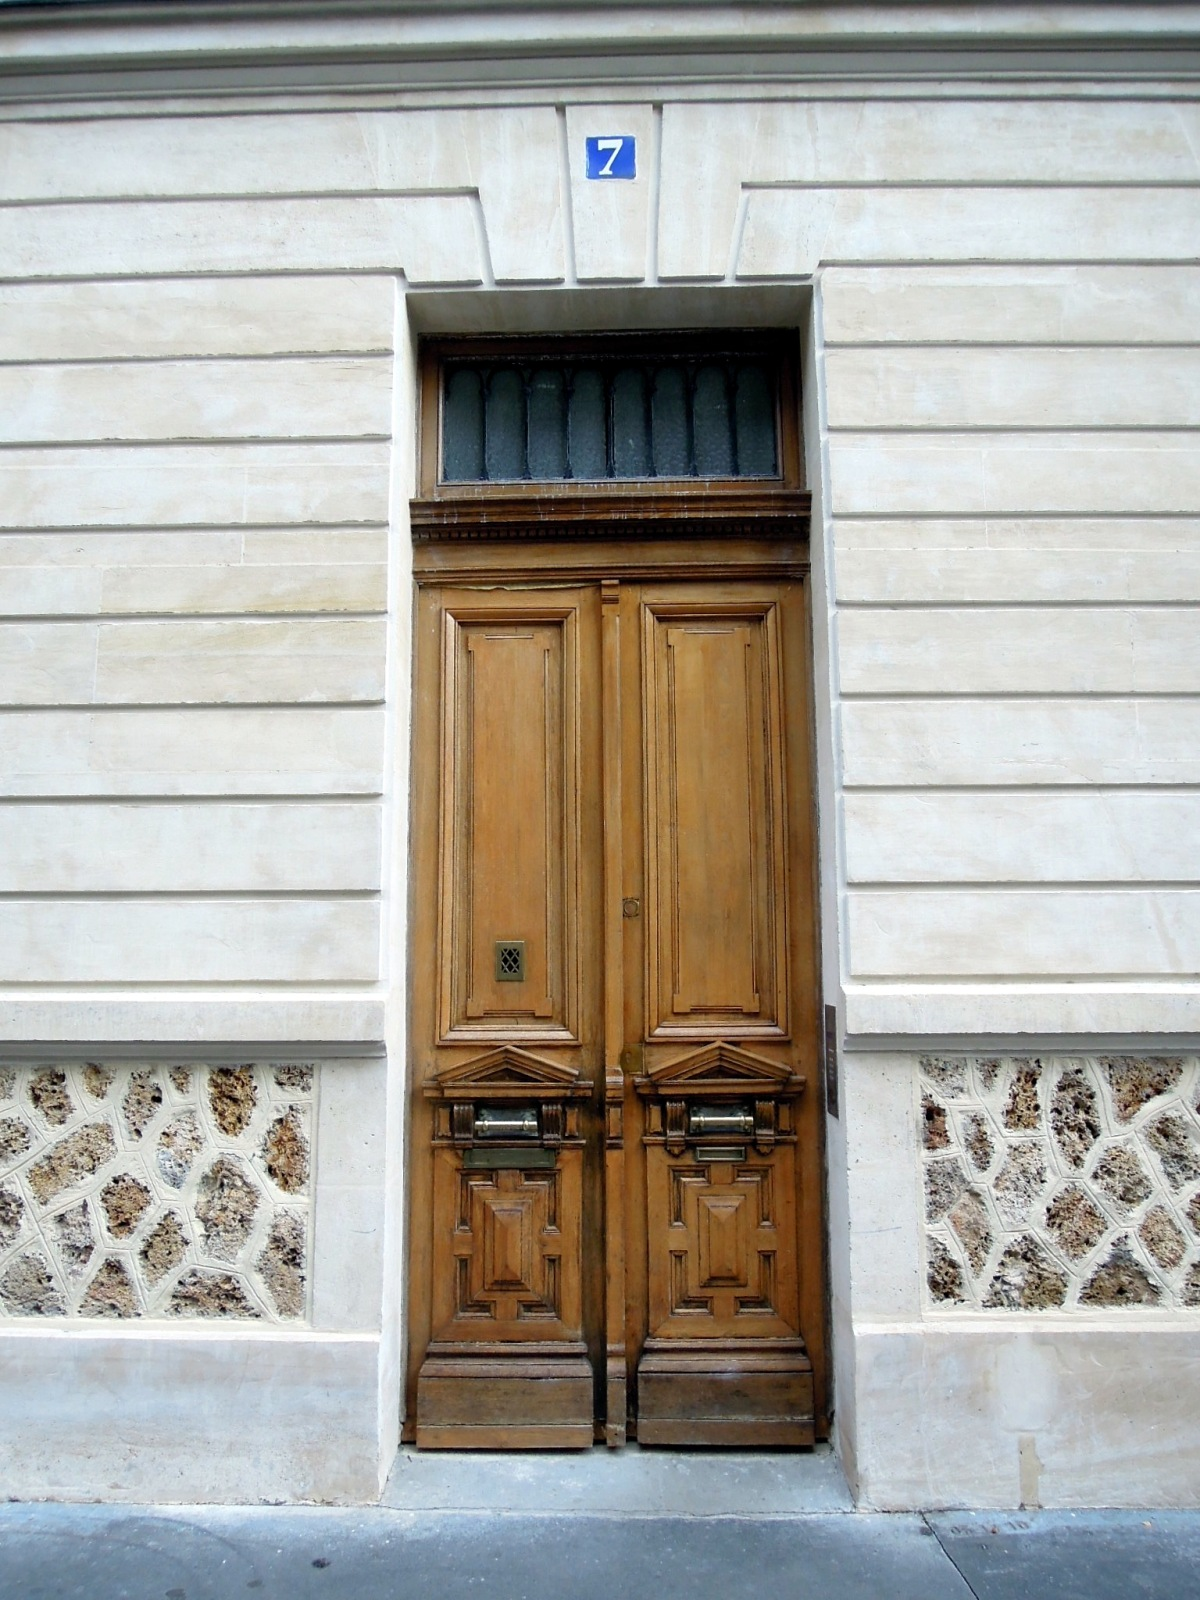 Lovely old wooden doors on Rue Vauquelin (I think)